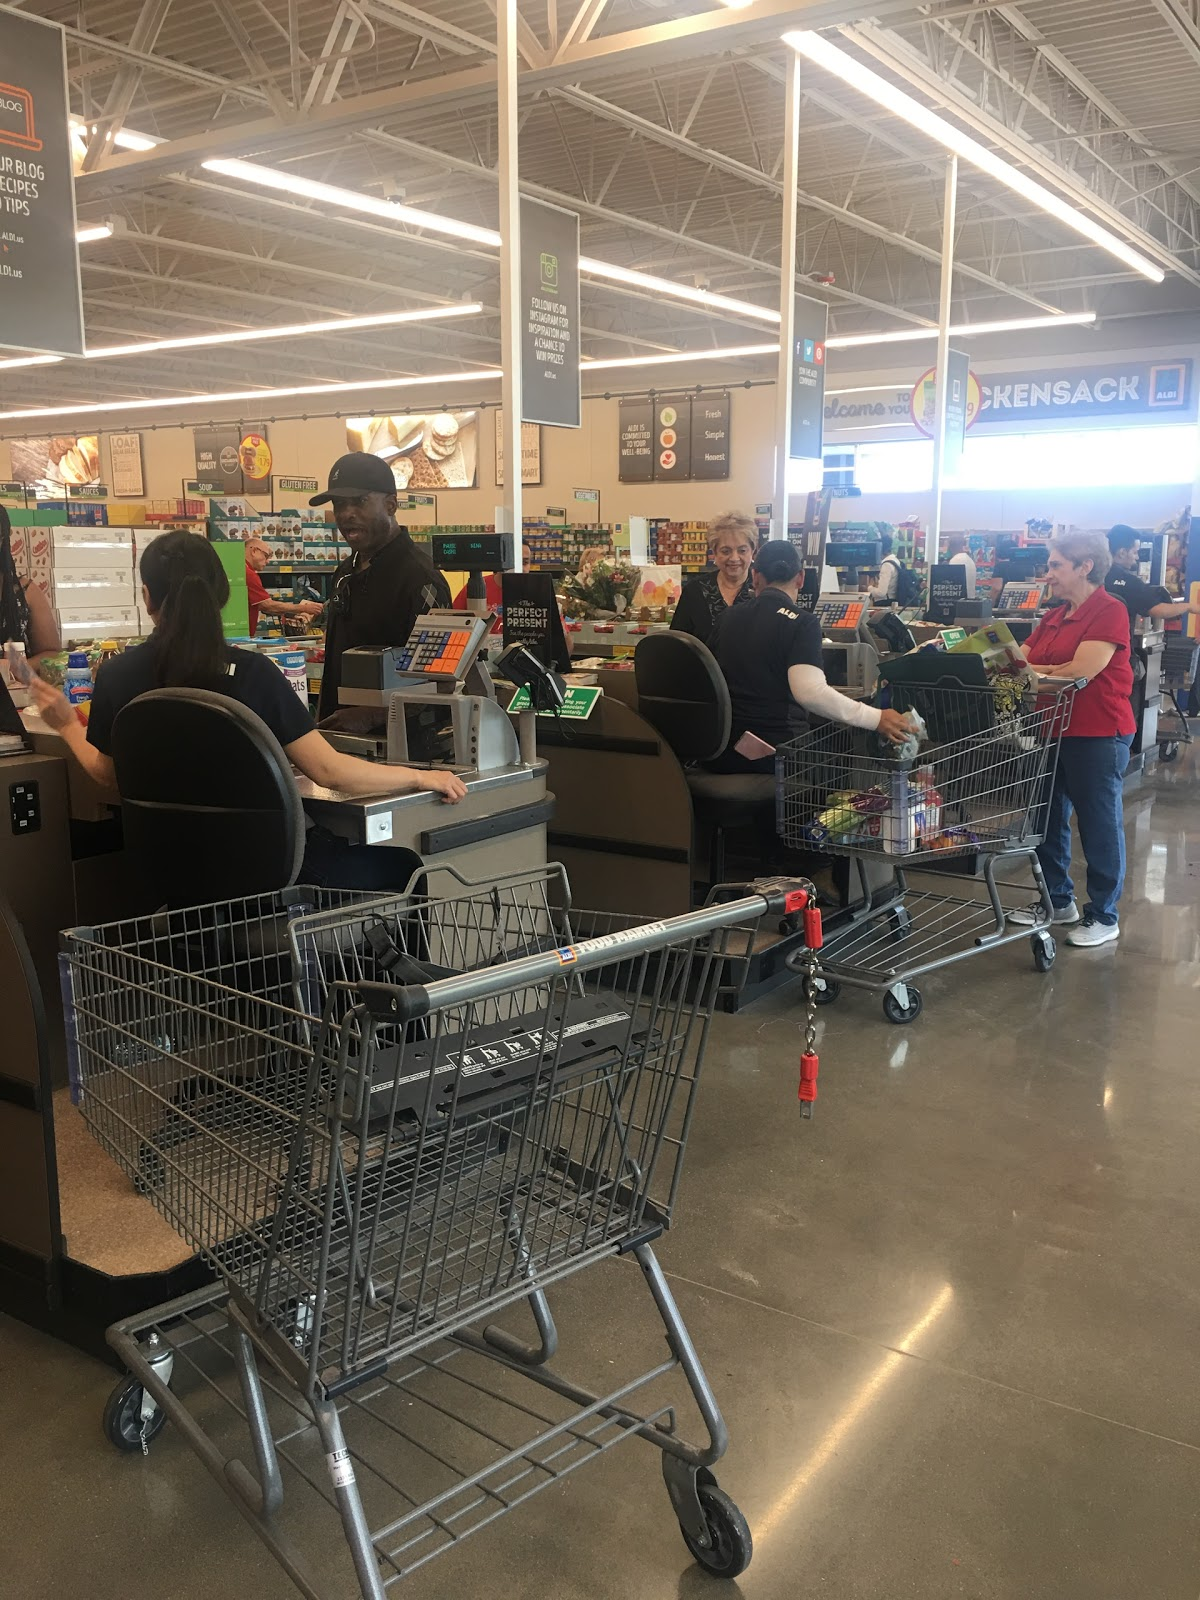 The Sasson Report: Food shopping: Aldi opens in Hackensack